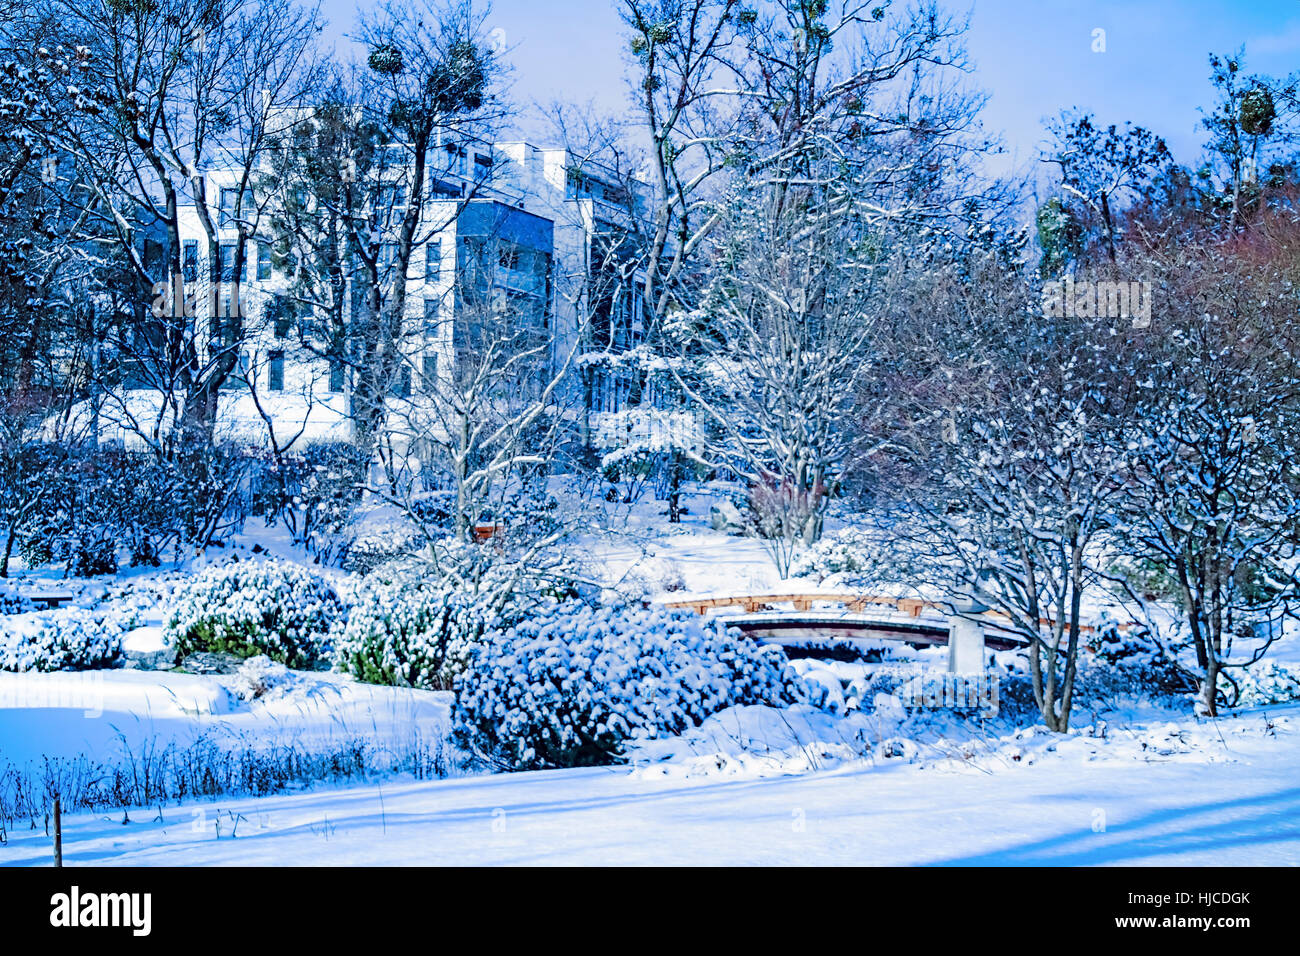 setagaya park vienna ein japanischer garten im winter stockfoto bild 131810467 alamy. Black Bedroom Furniture Sets. Home Design Ideas